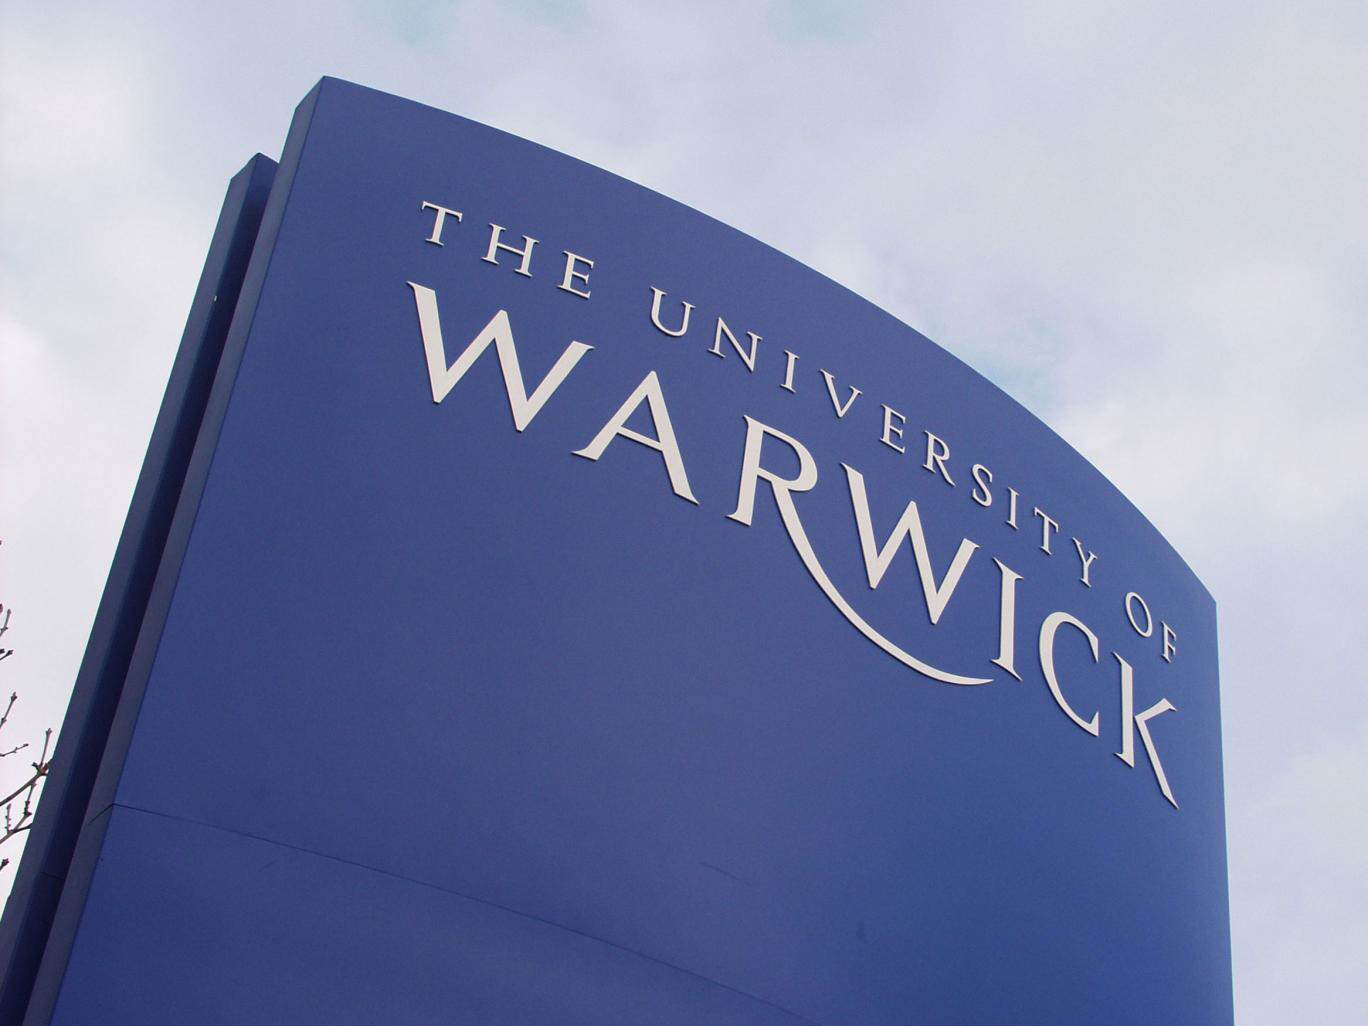 This Horrific Incident Proves Racism Still Exists In UK Universities warwick1